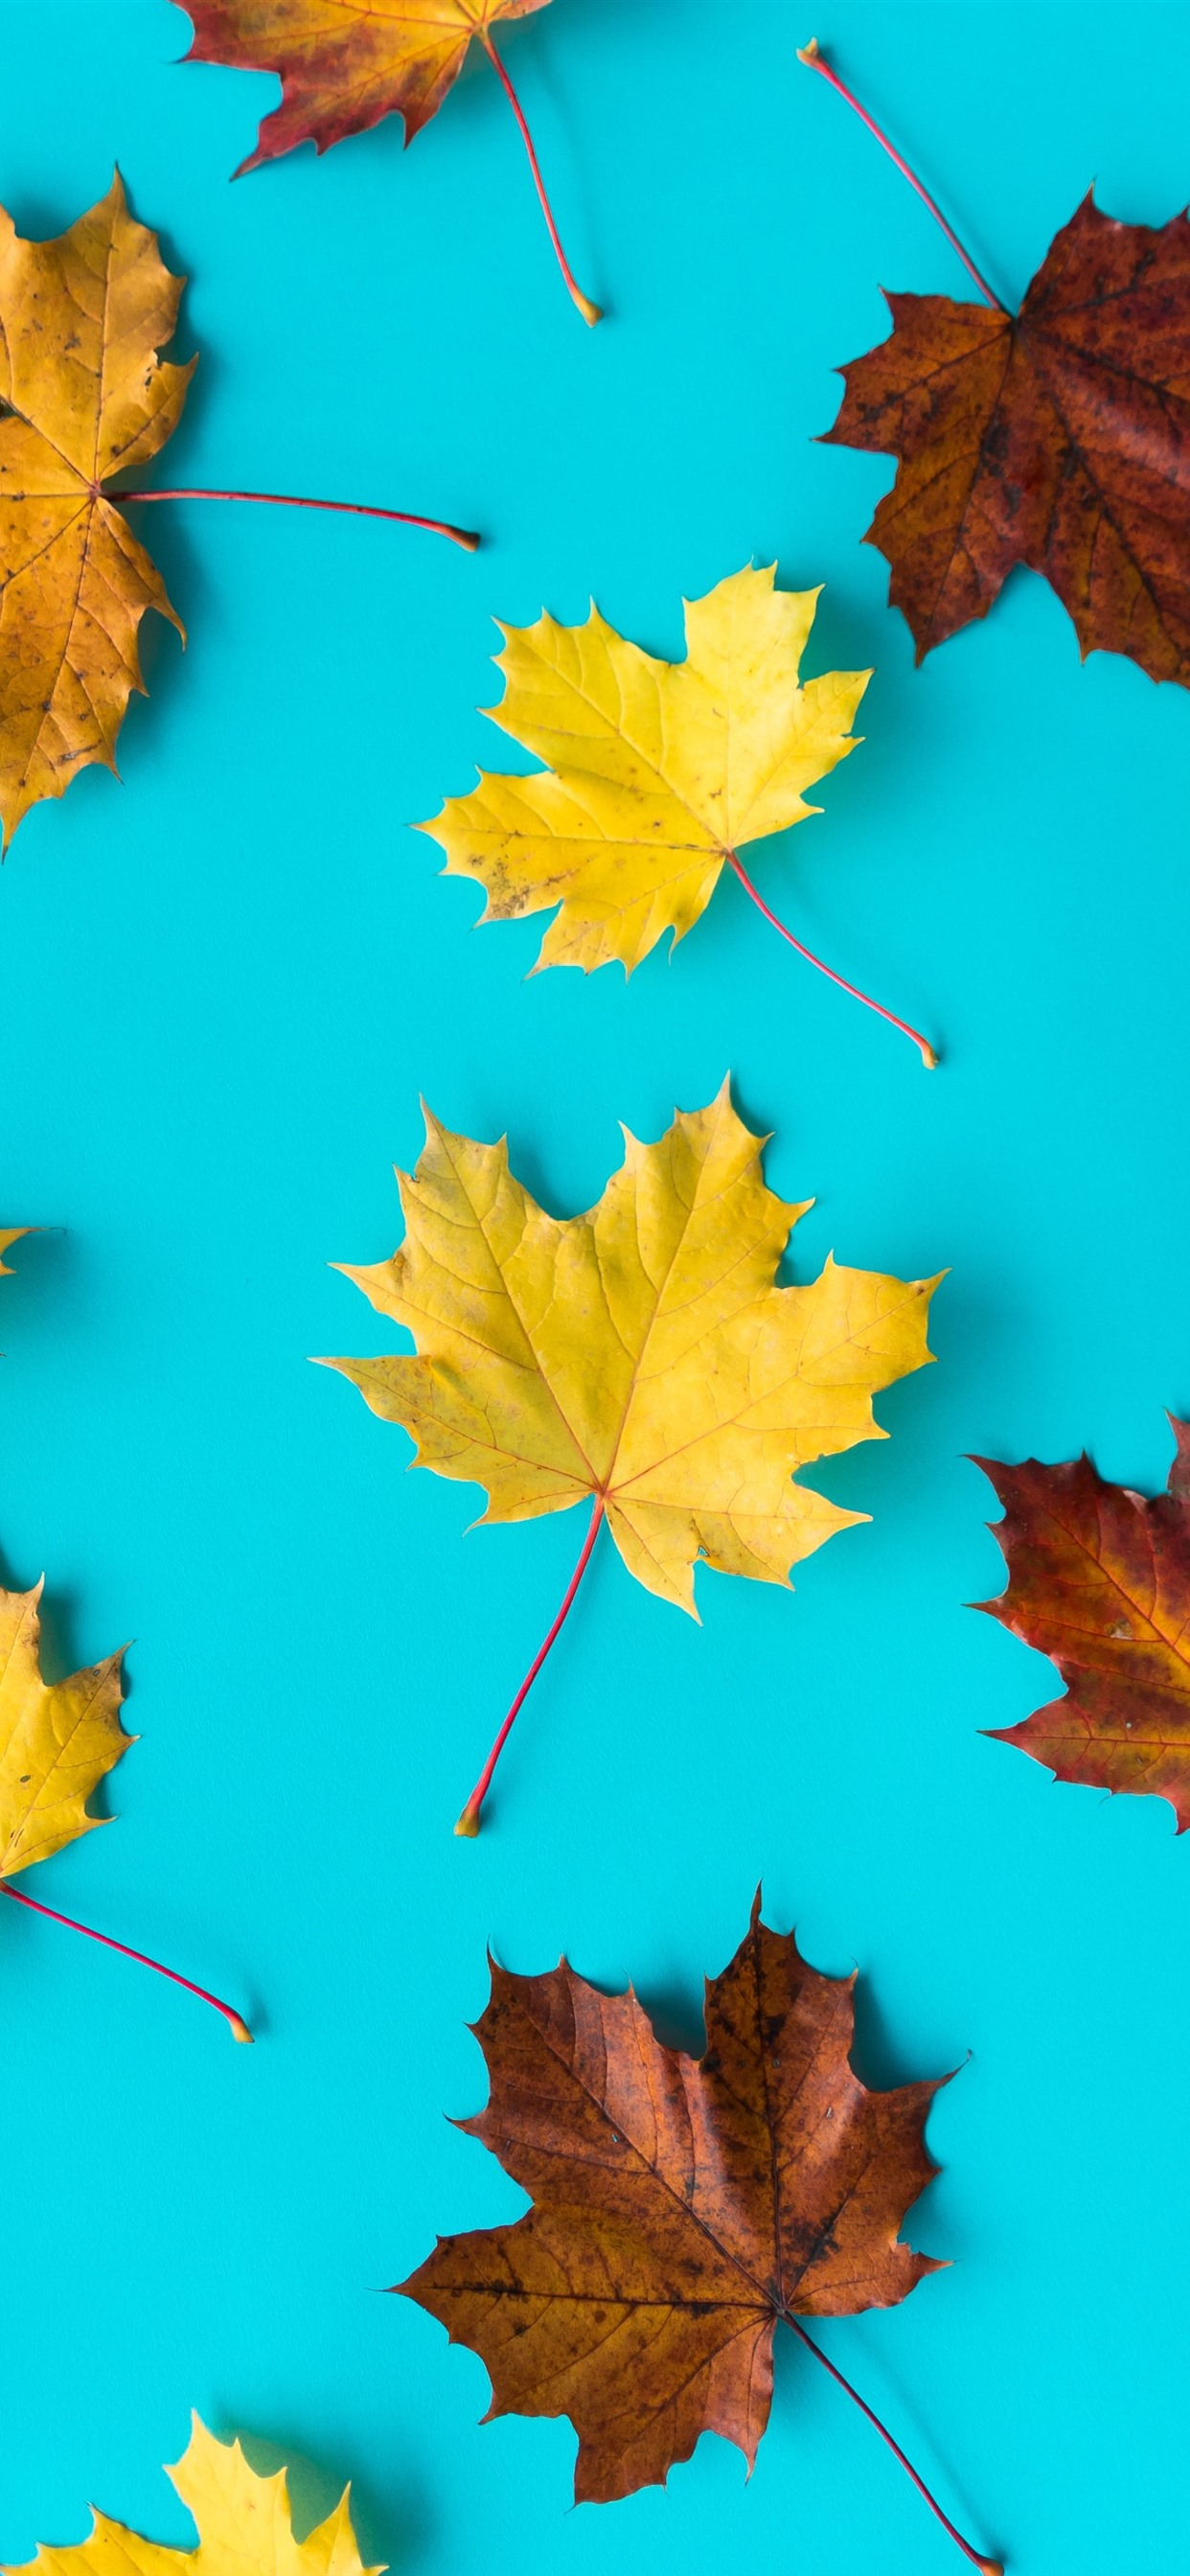 Wallpaper Yellow And Brown Maple Leaves Blue Background